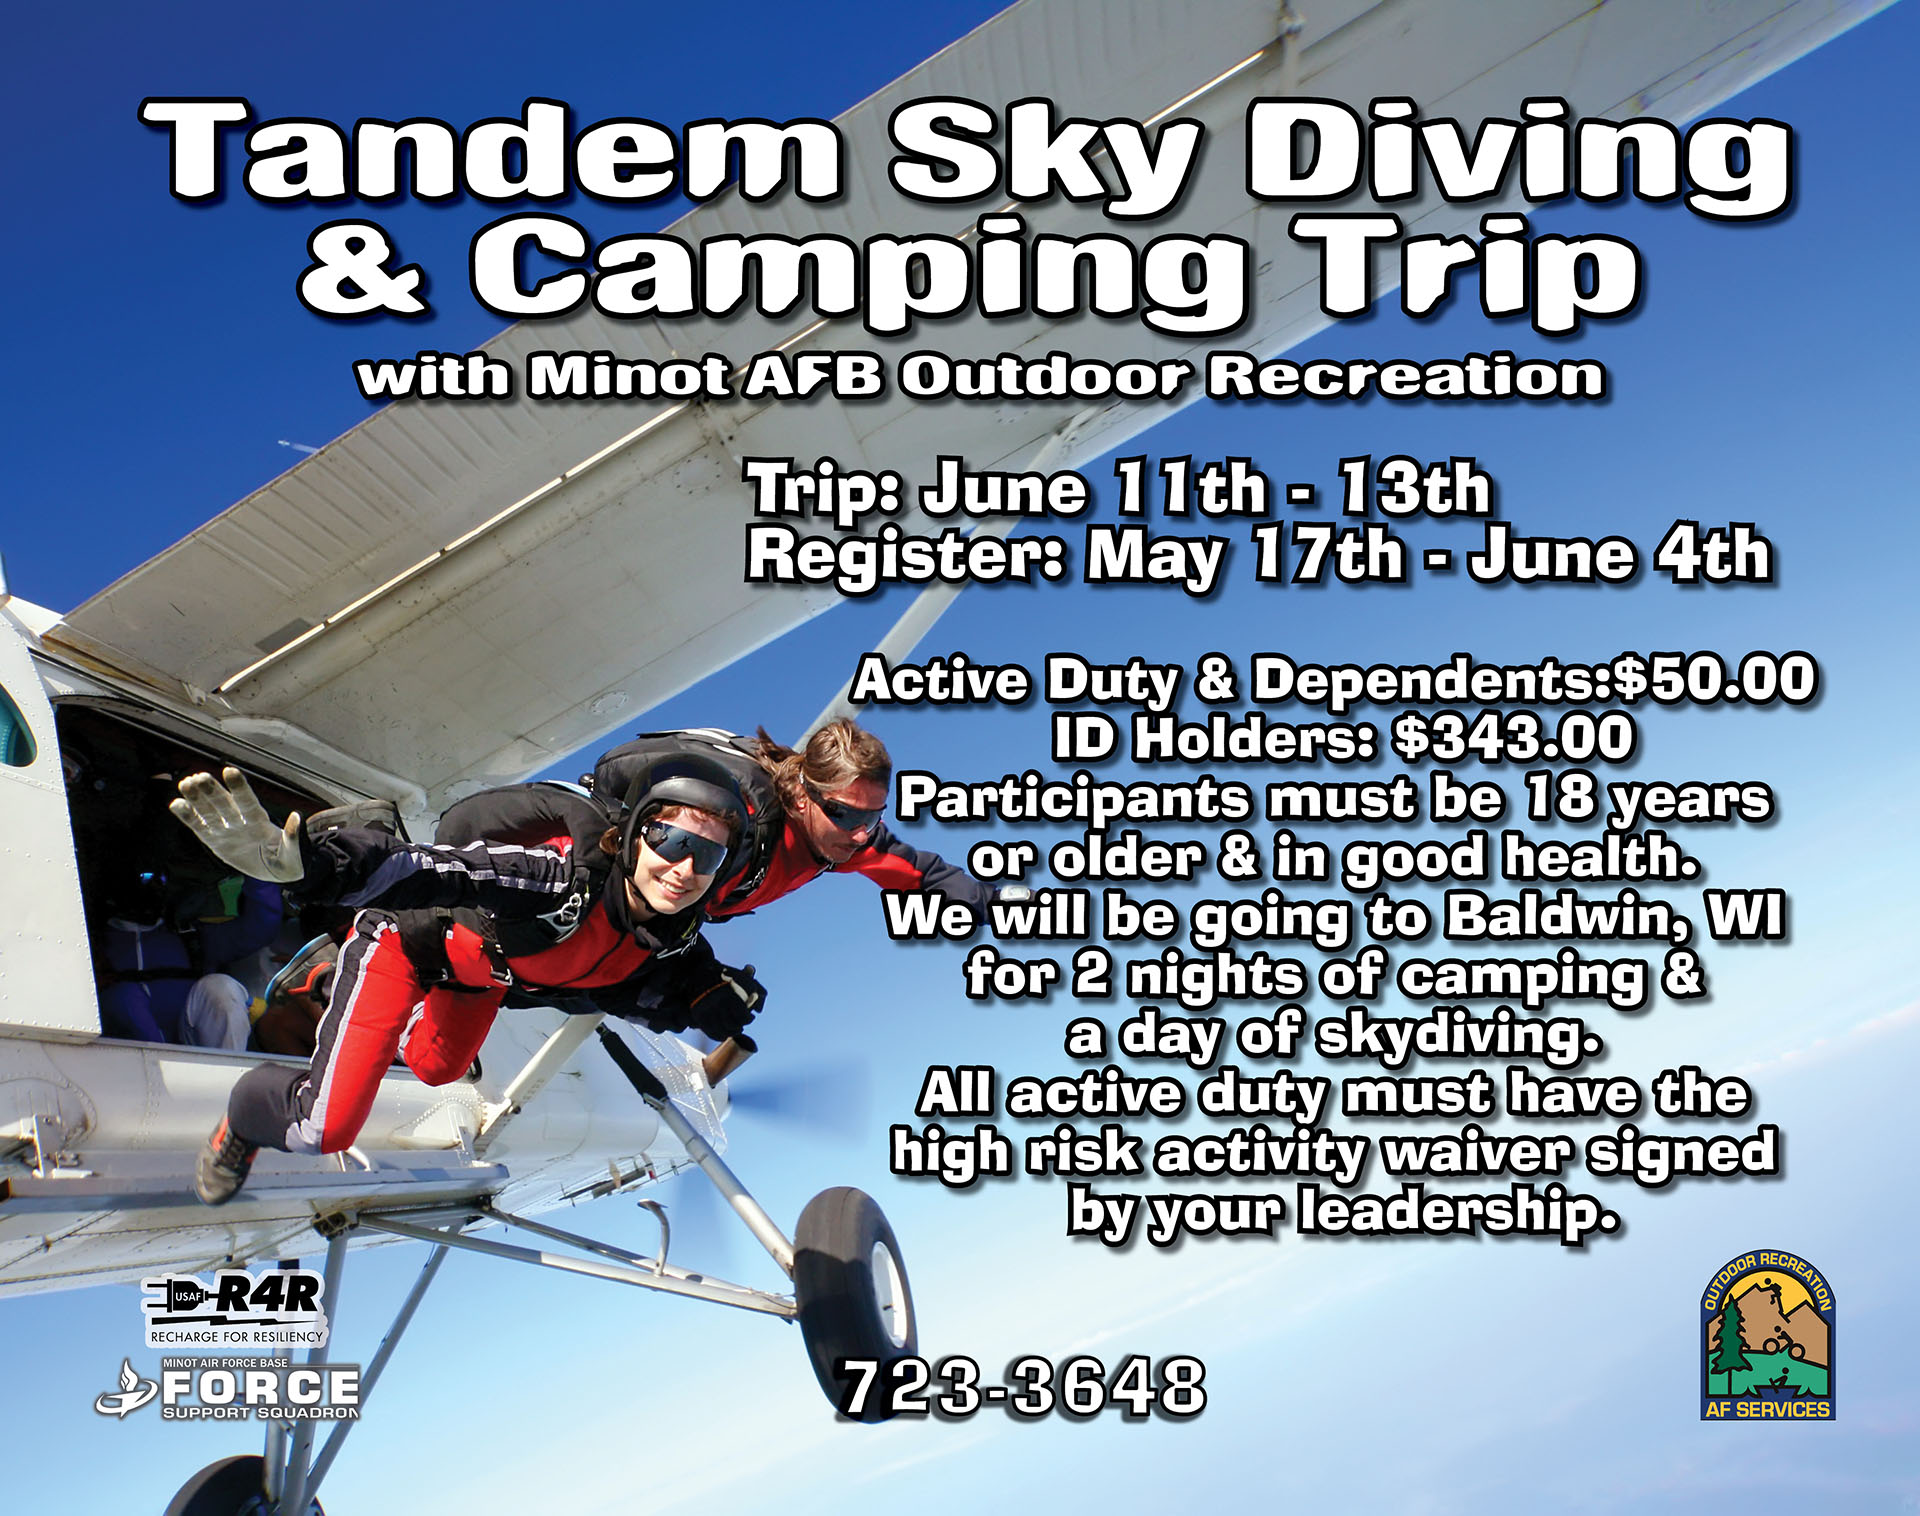 Registration Opens: Skydiving & Camping Trip